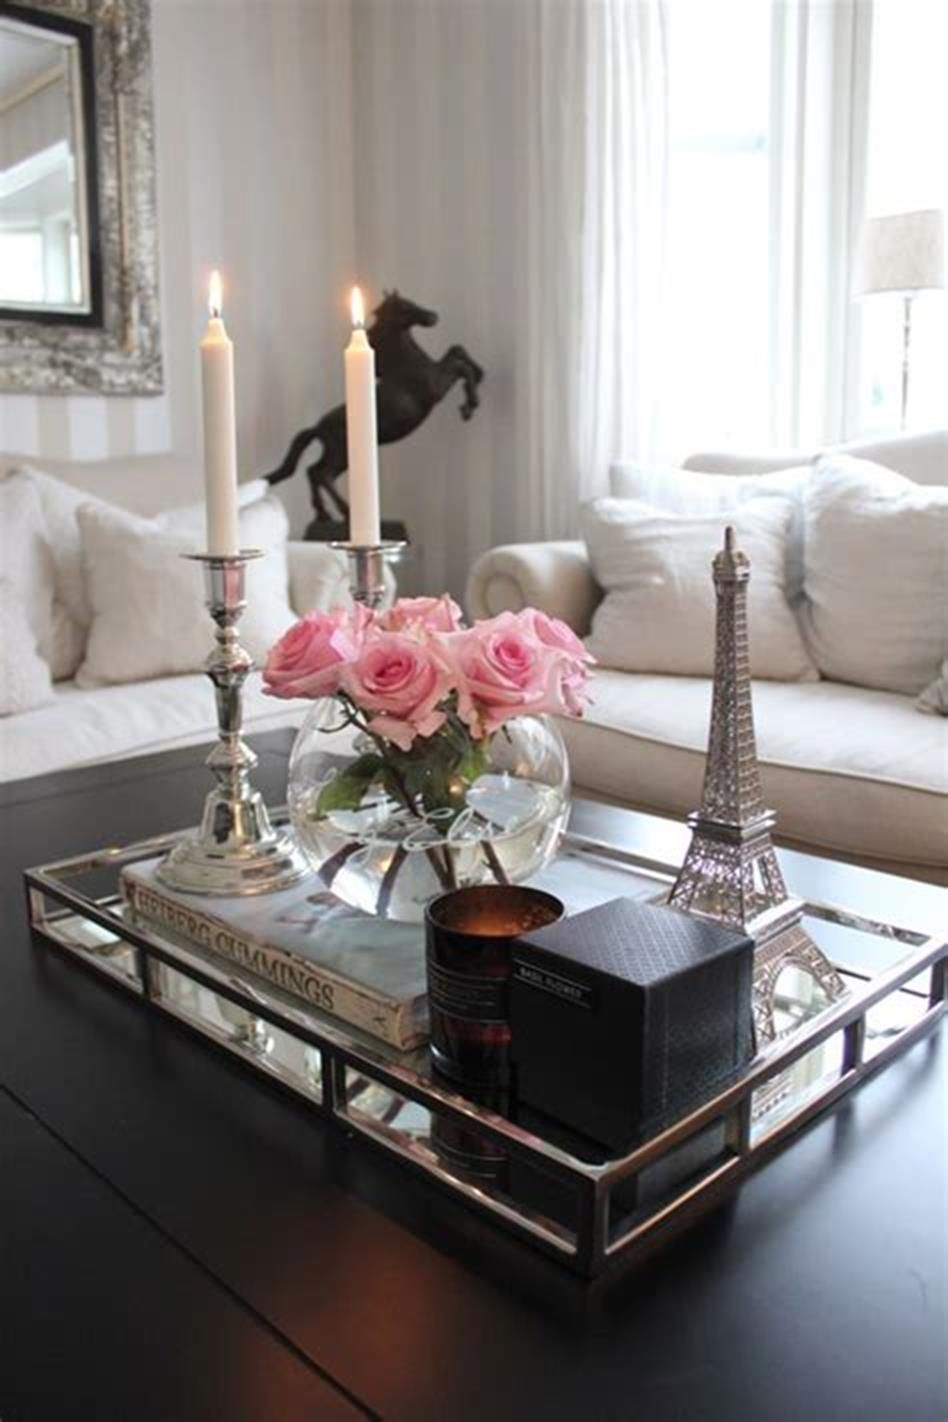 39 stunning decorative trays for centerpieces ideas